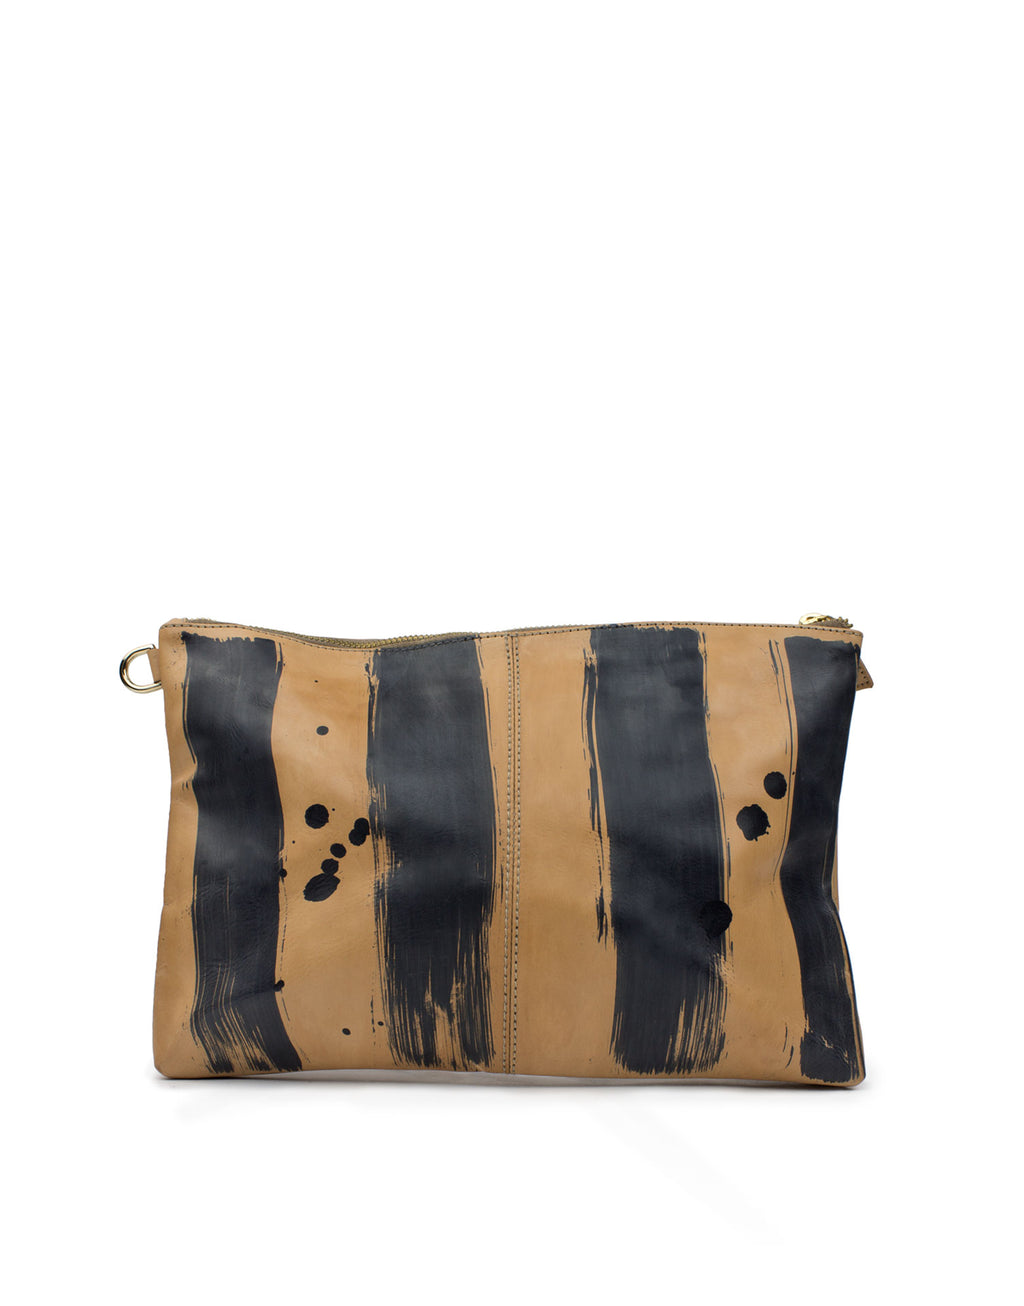 One of a kind hand painted leather clutch by designer Georgina Goodman, Made in Portugal and hand painted in London this handy pouch bag is Made in Love